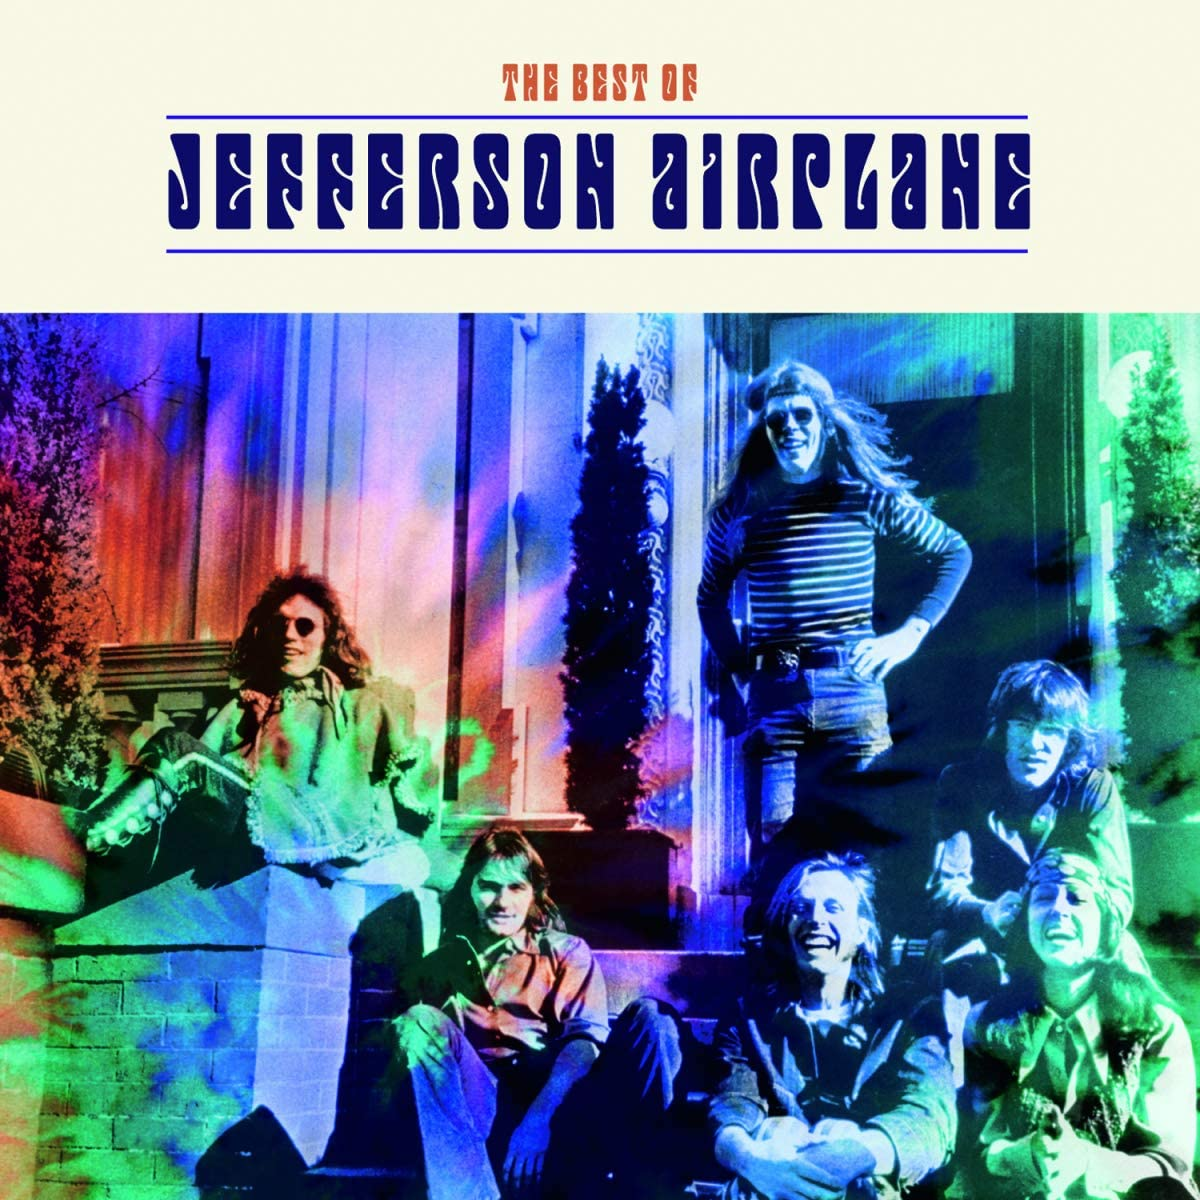 Jefferson Airplane/The Best of [CD]